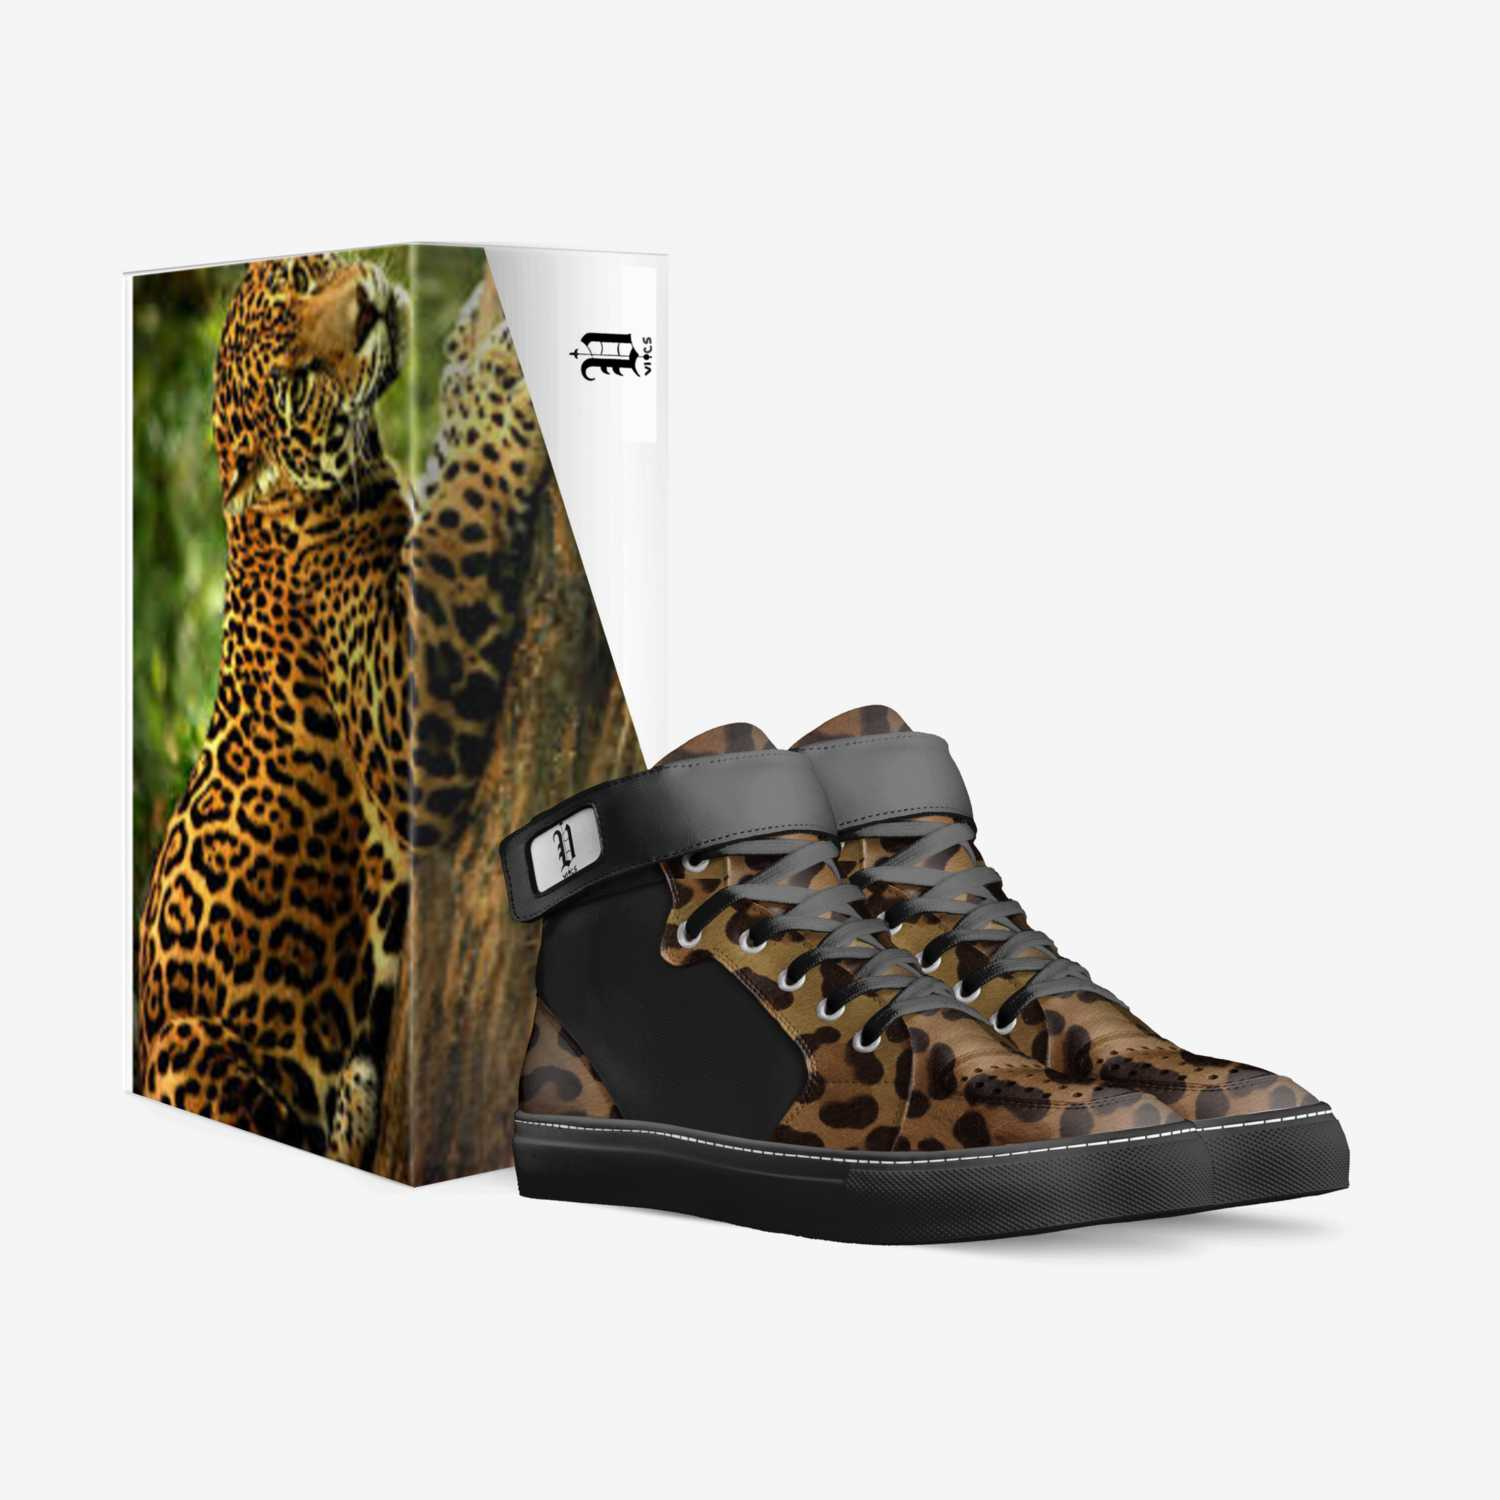 vics jaguar 3 custom made in Italy shoes by Brayden Murphy | Box view